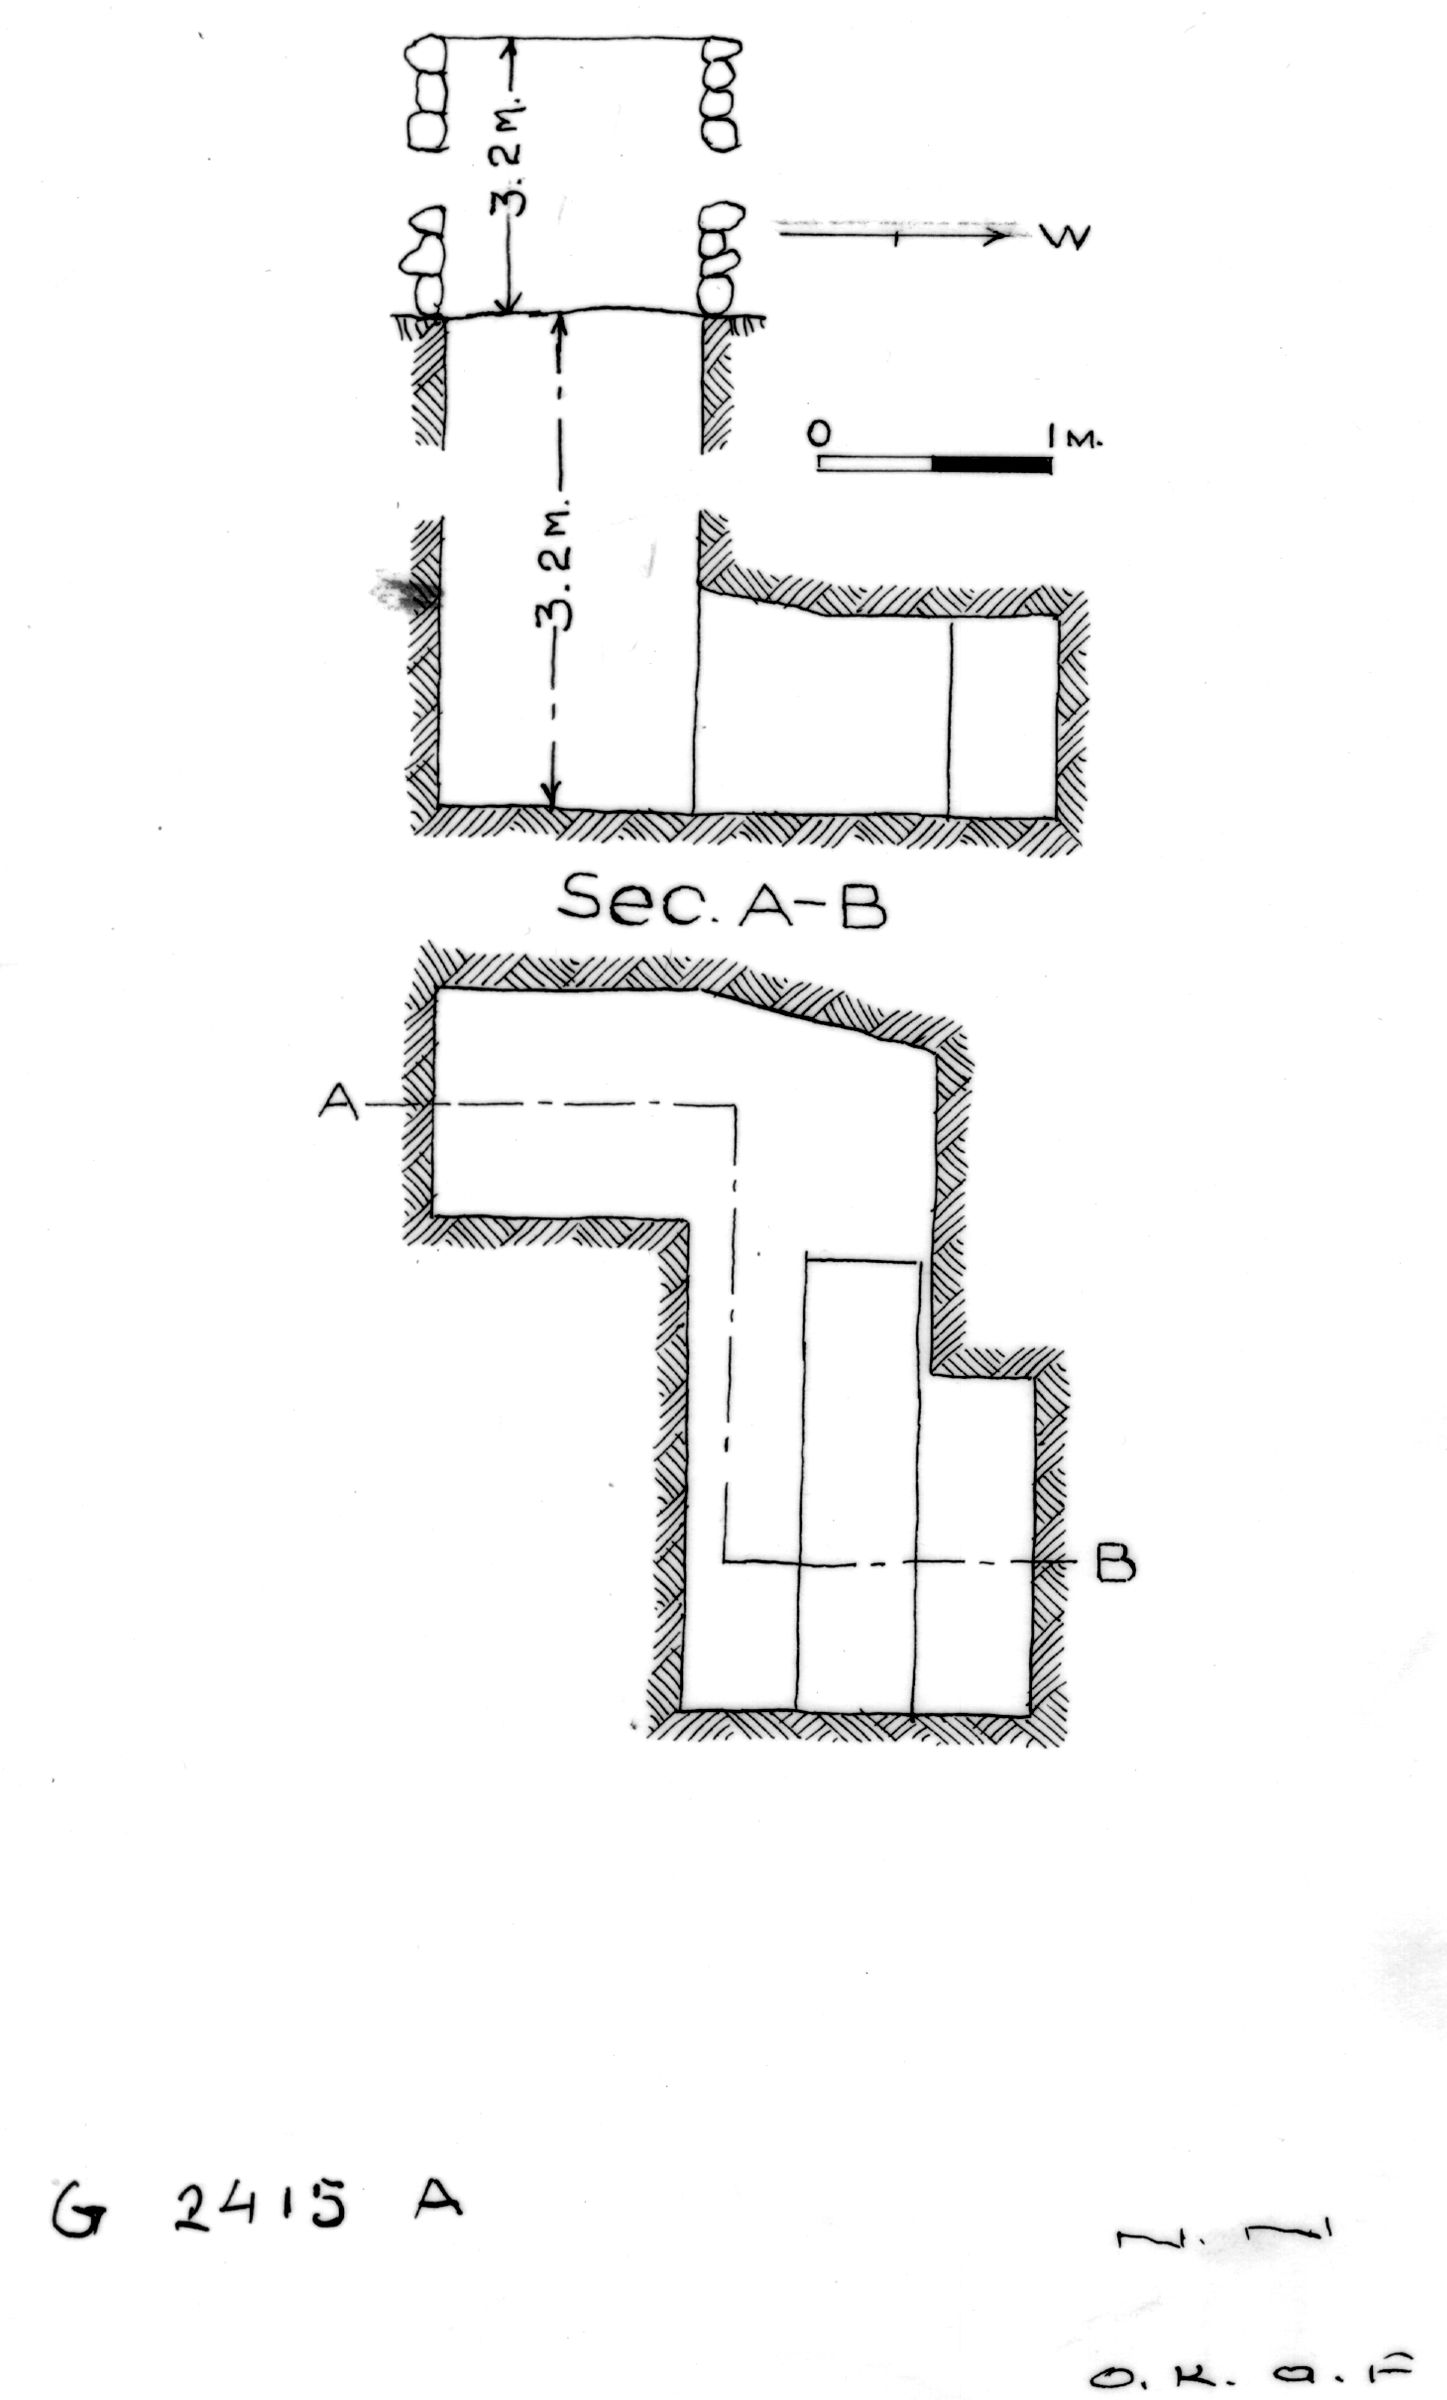 Maps and plans: G 2415, Shaft A